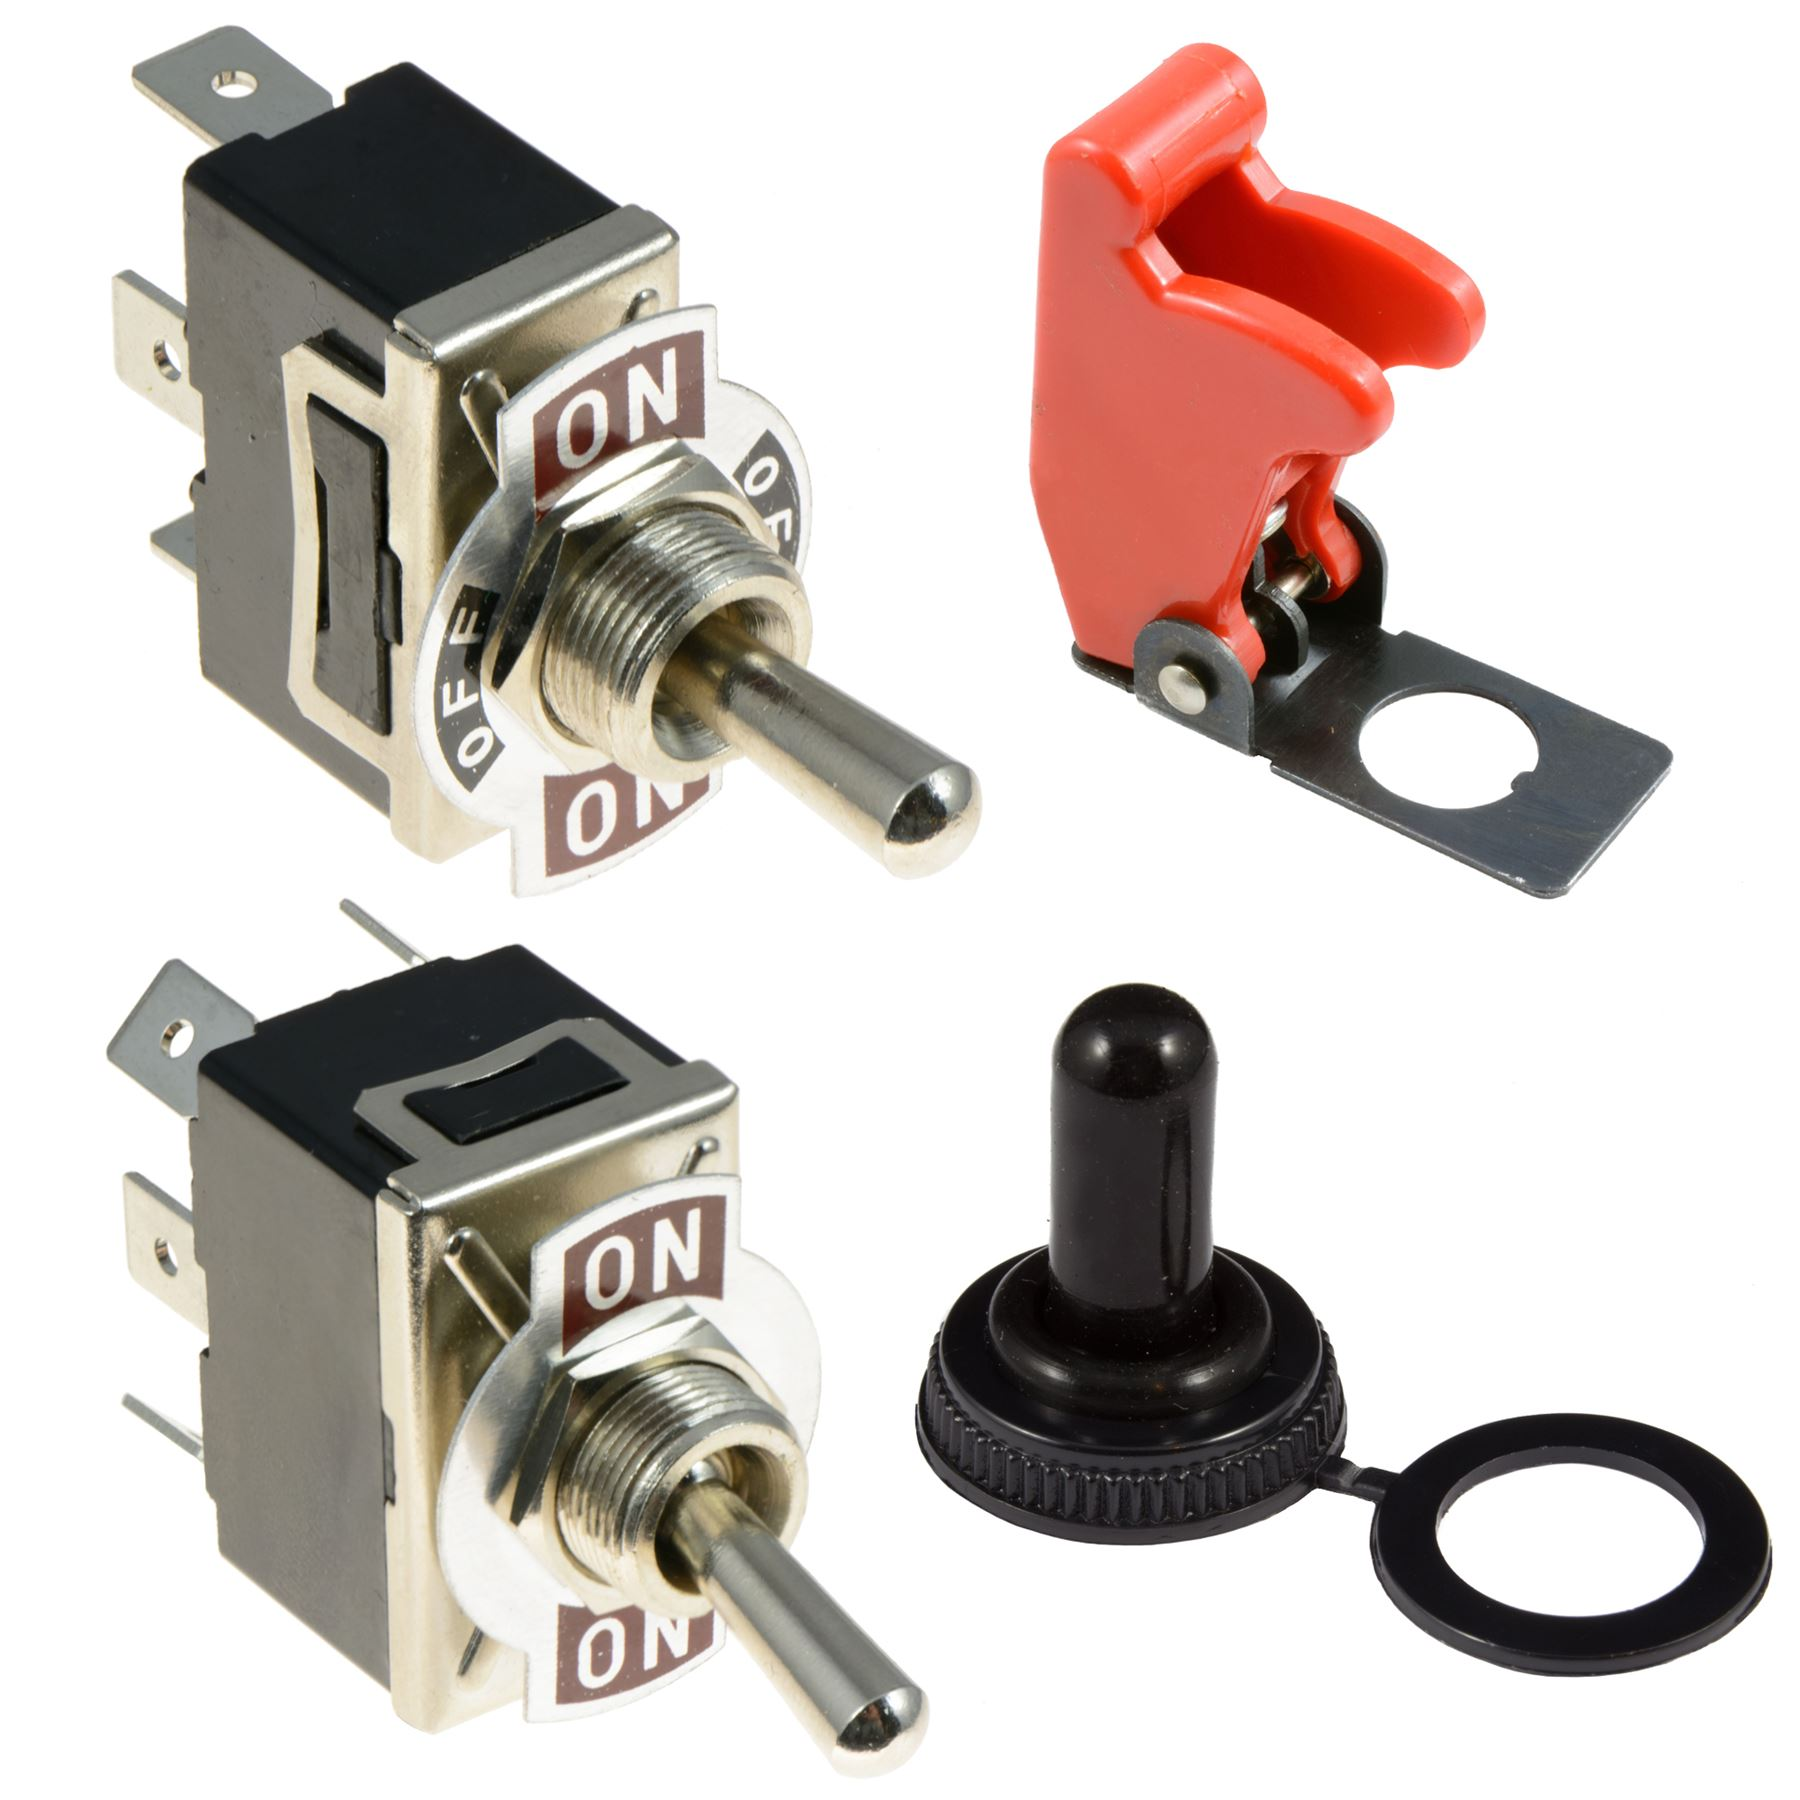 Waterproof Toggle Switch | eBay